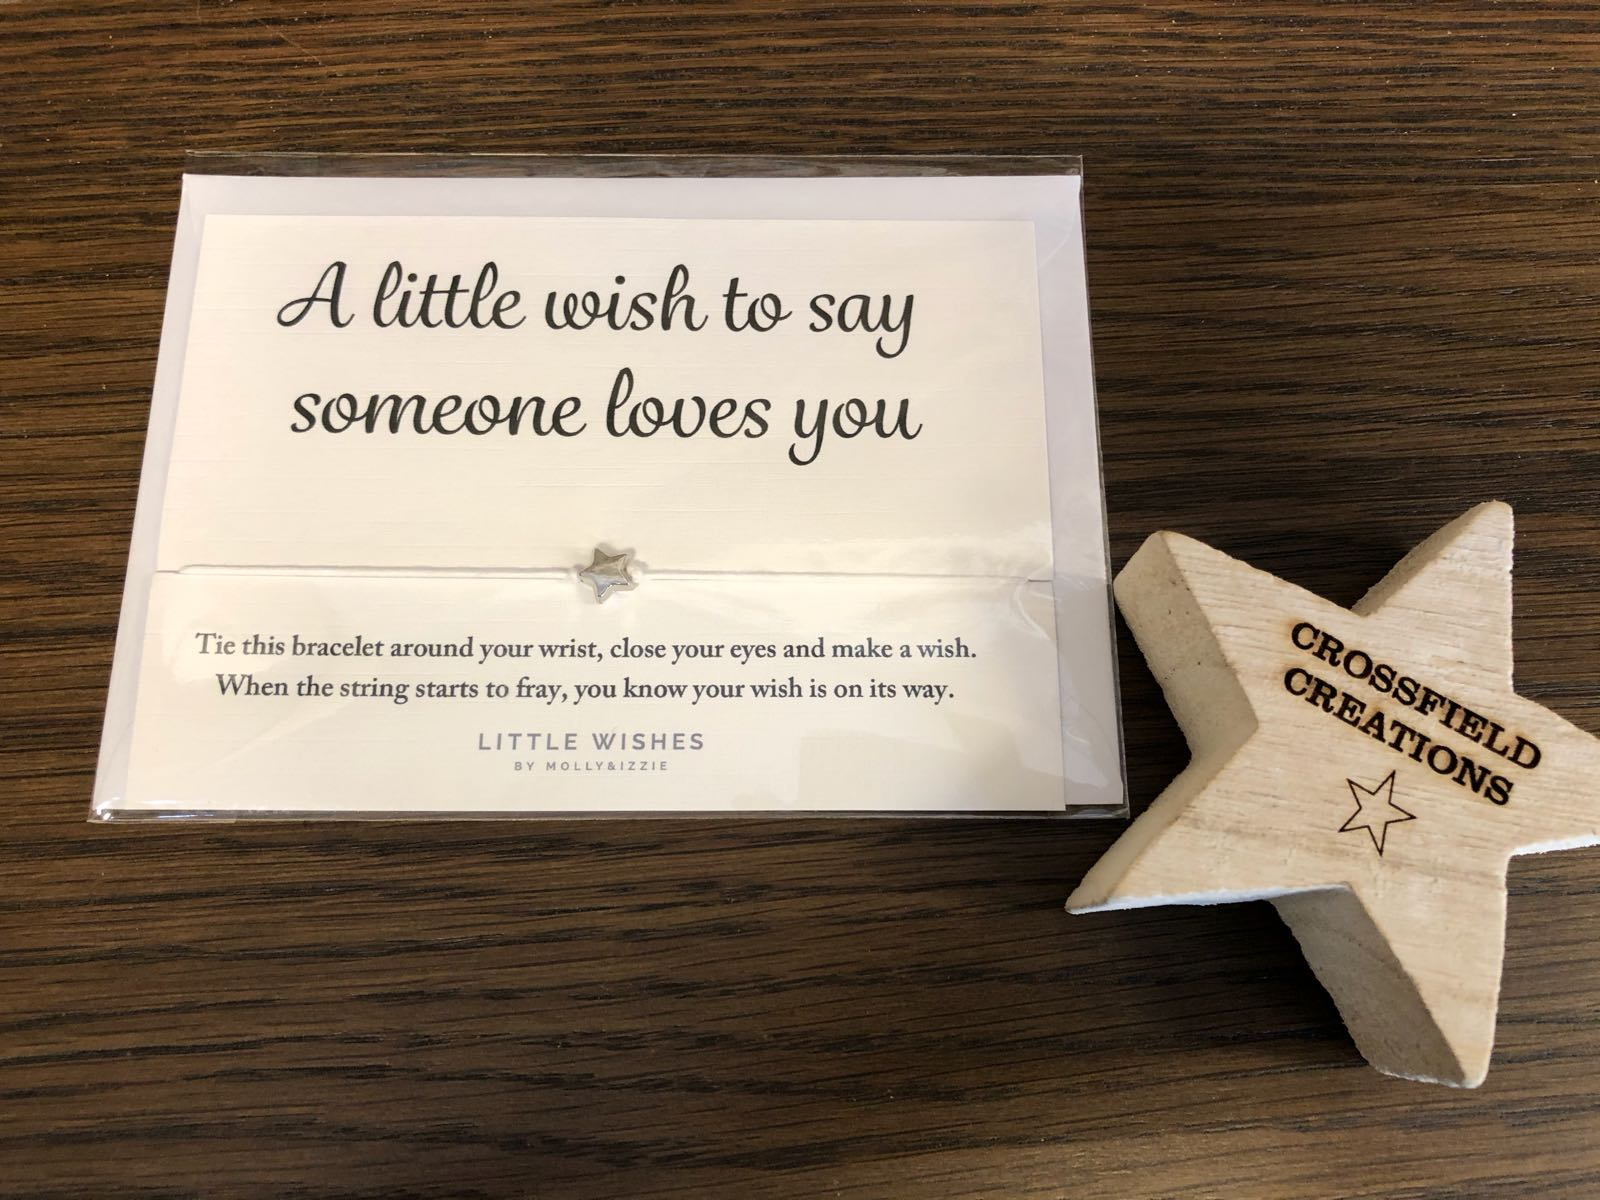 Someone loves you wish bracelet